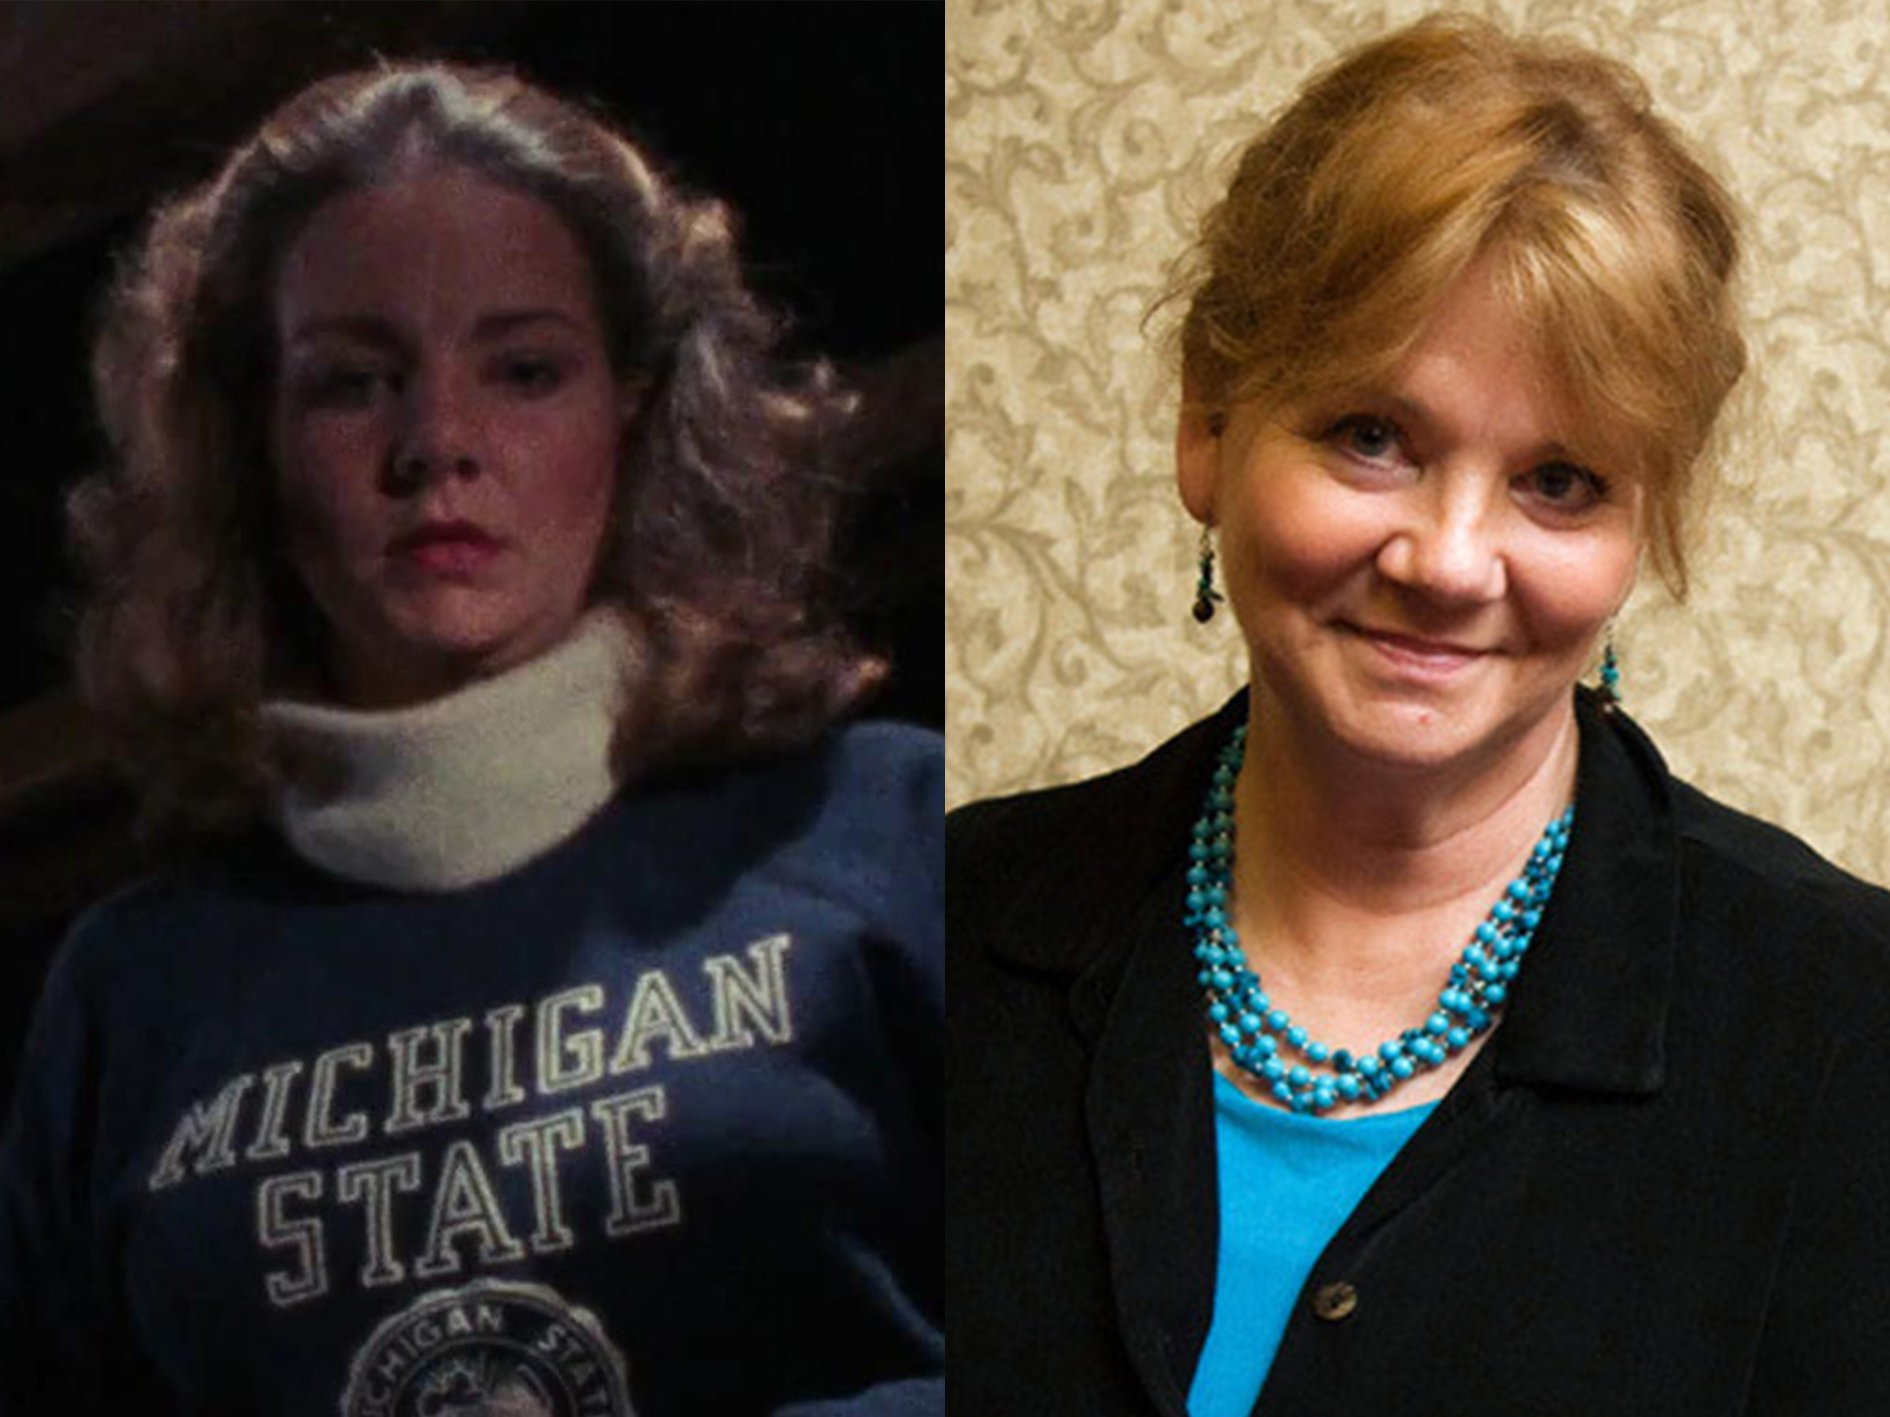 Betsy Baker The Evil Dead You Won't Believe What The Cast Of The Evil Dead Look Like Now!